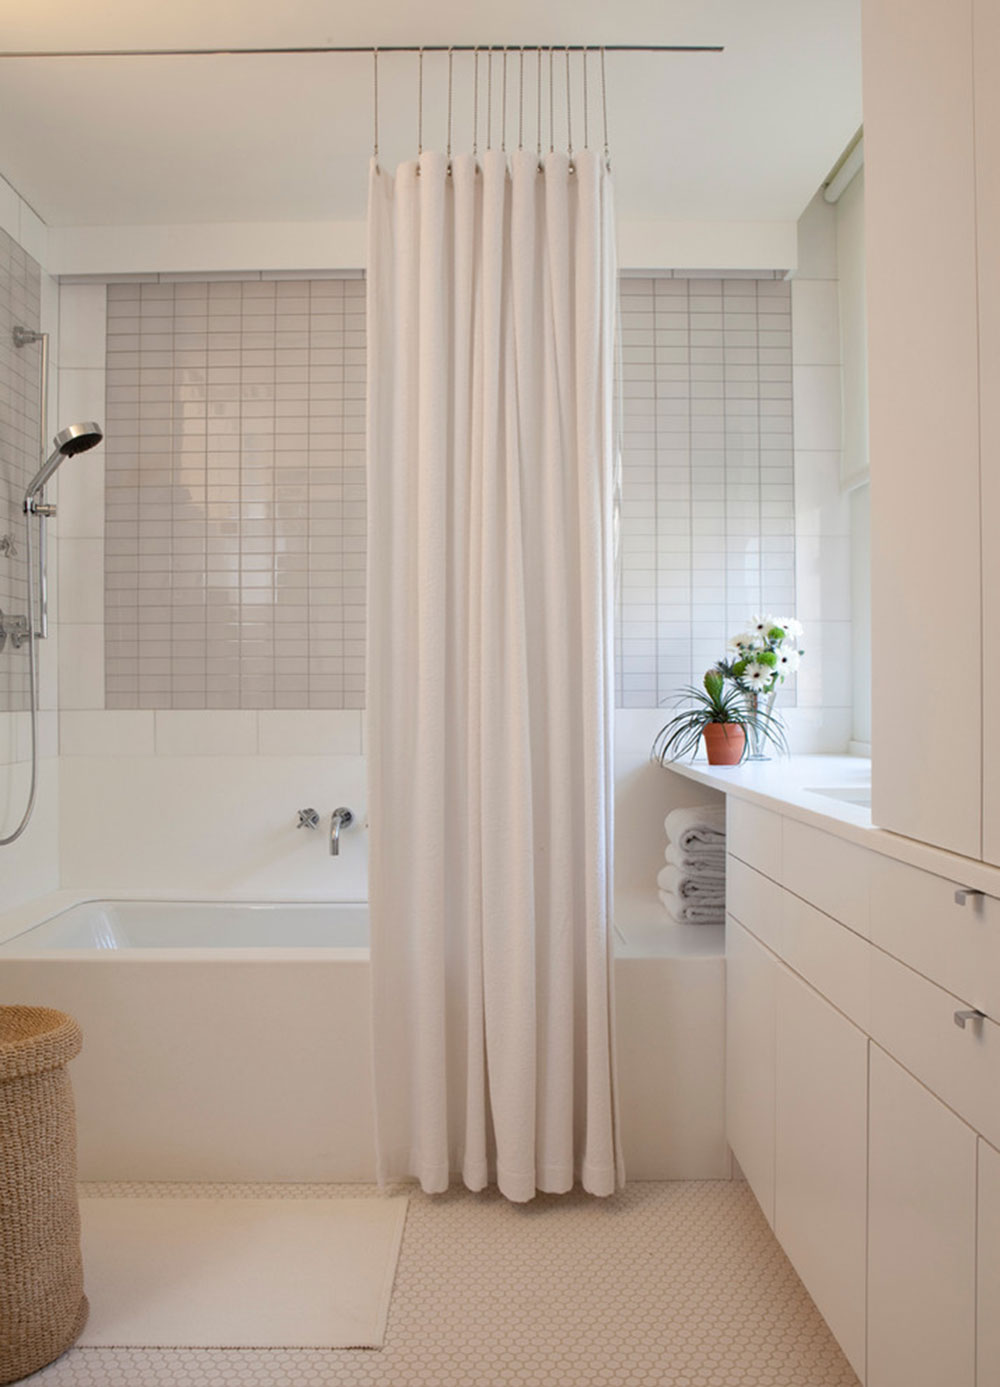 Enhance your bathroom look with trendy shower curtains3 trendy shower curtains for your bathroom